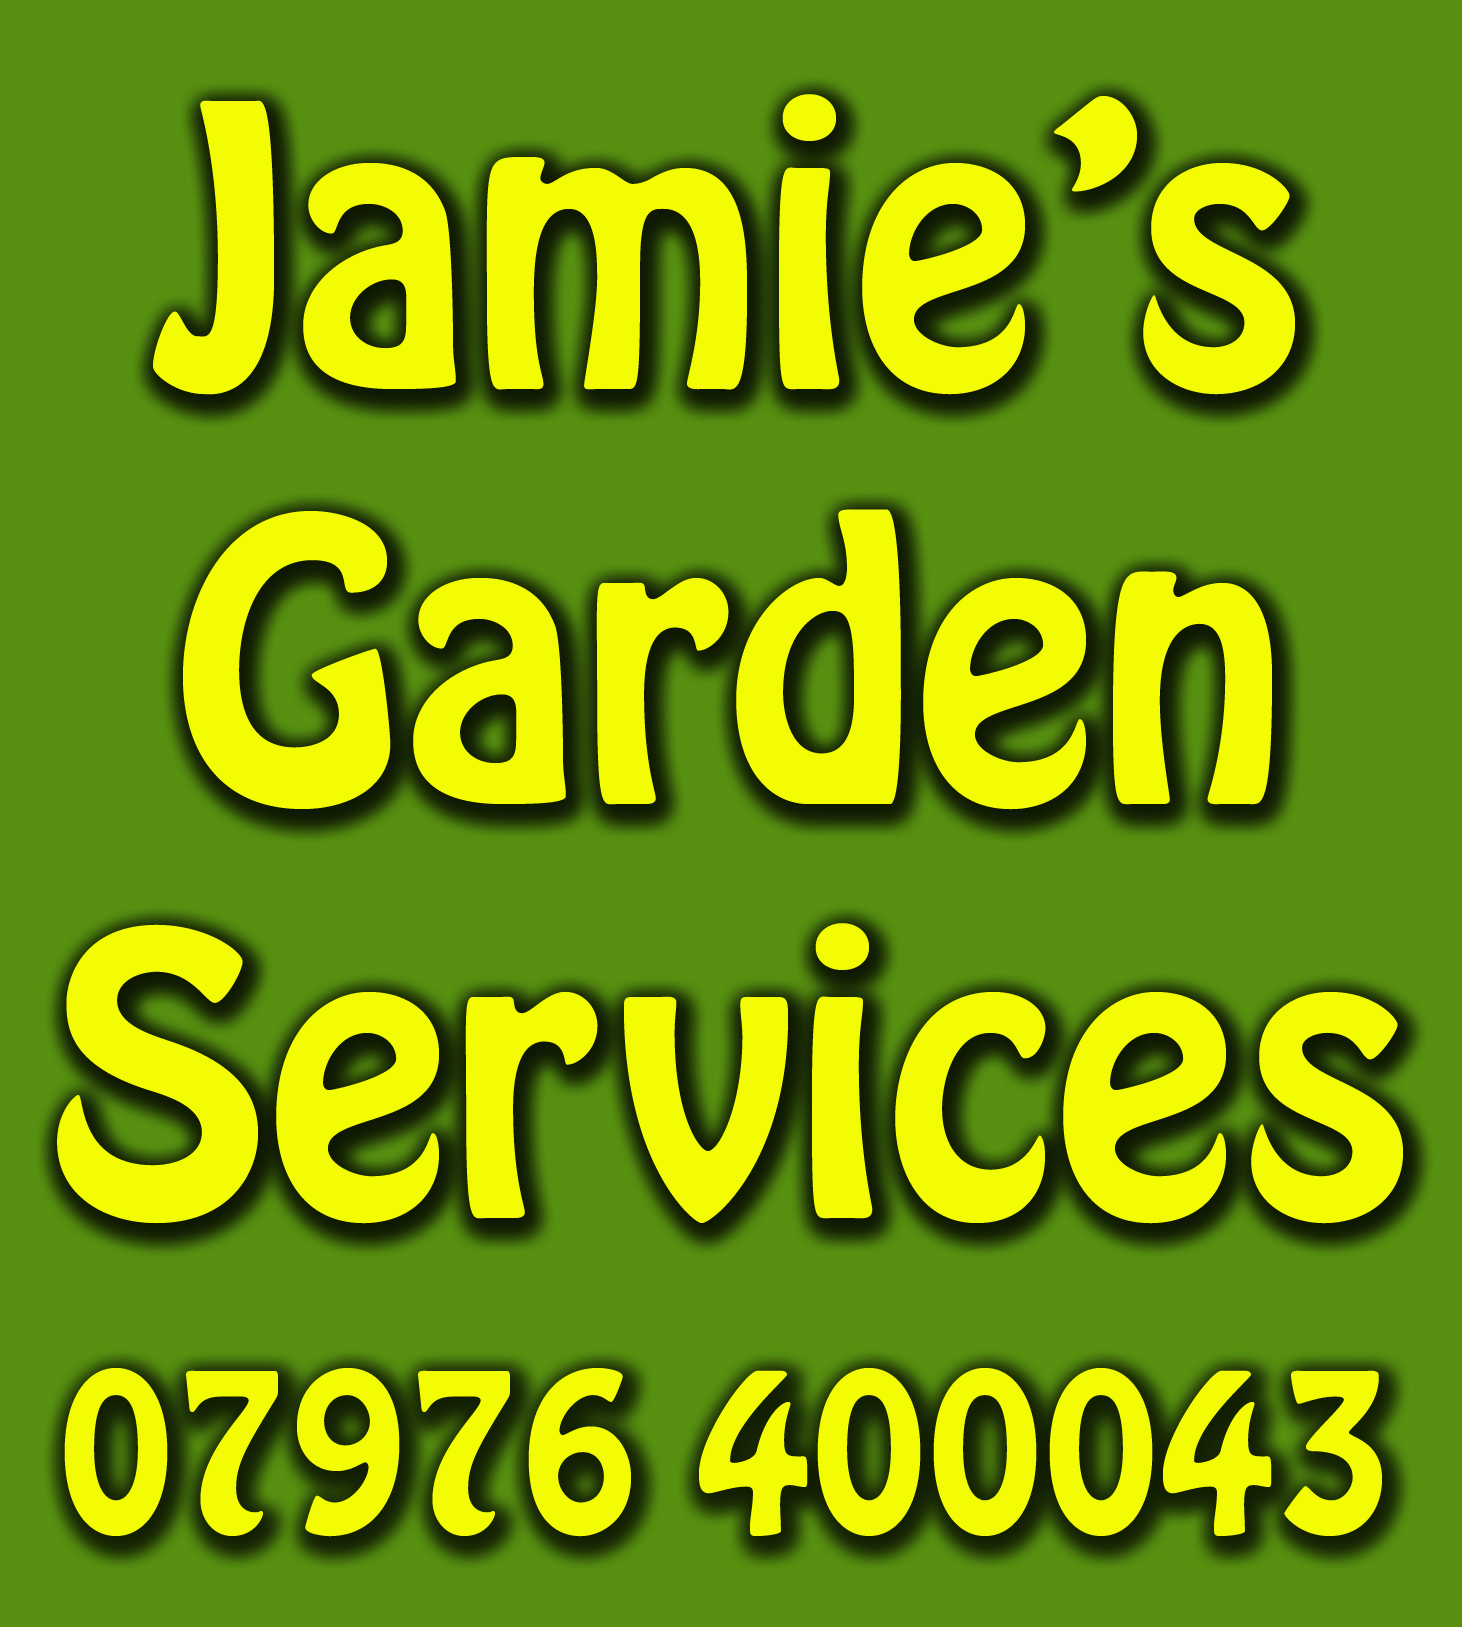 Jamie's Garden Services for Grounds Maintenance & Tree Services